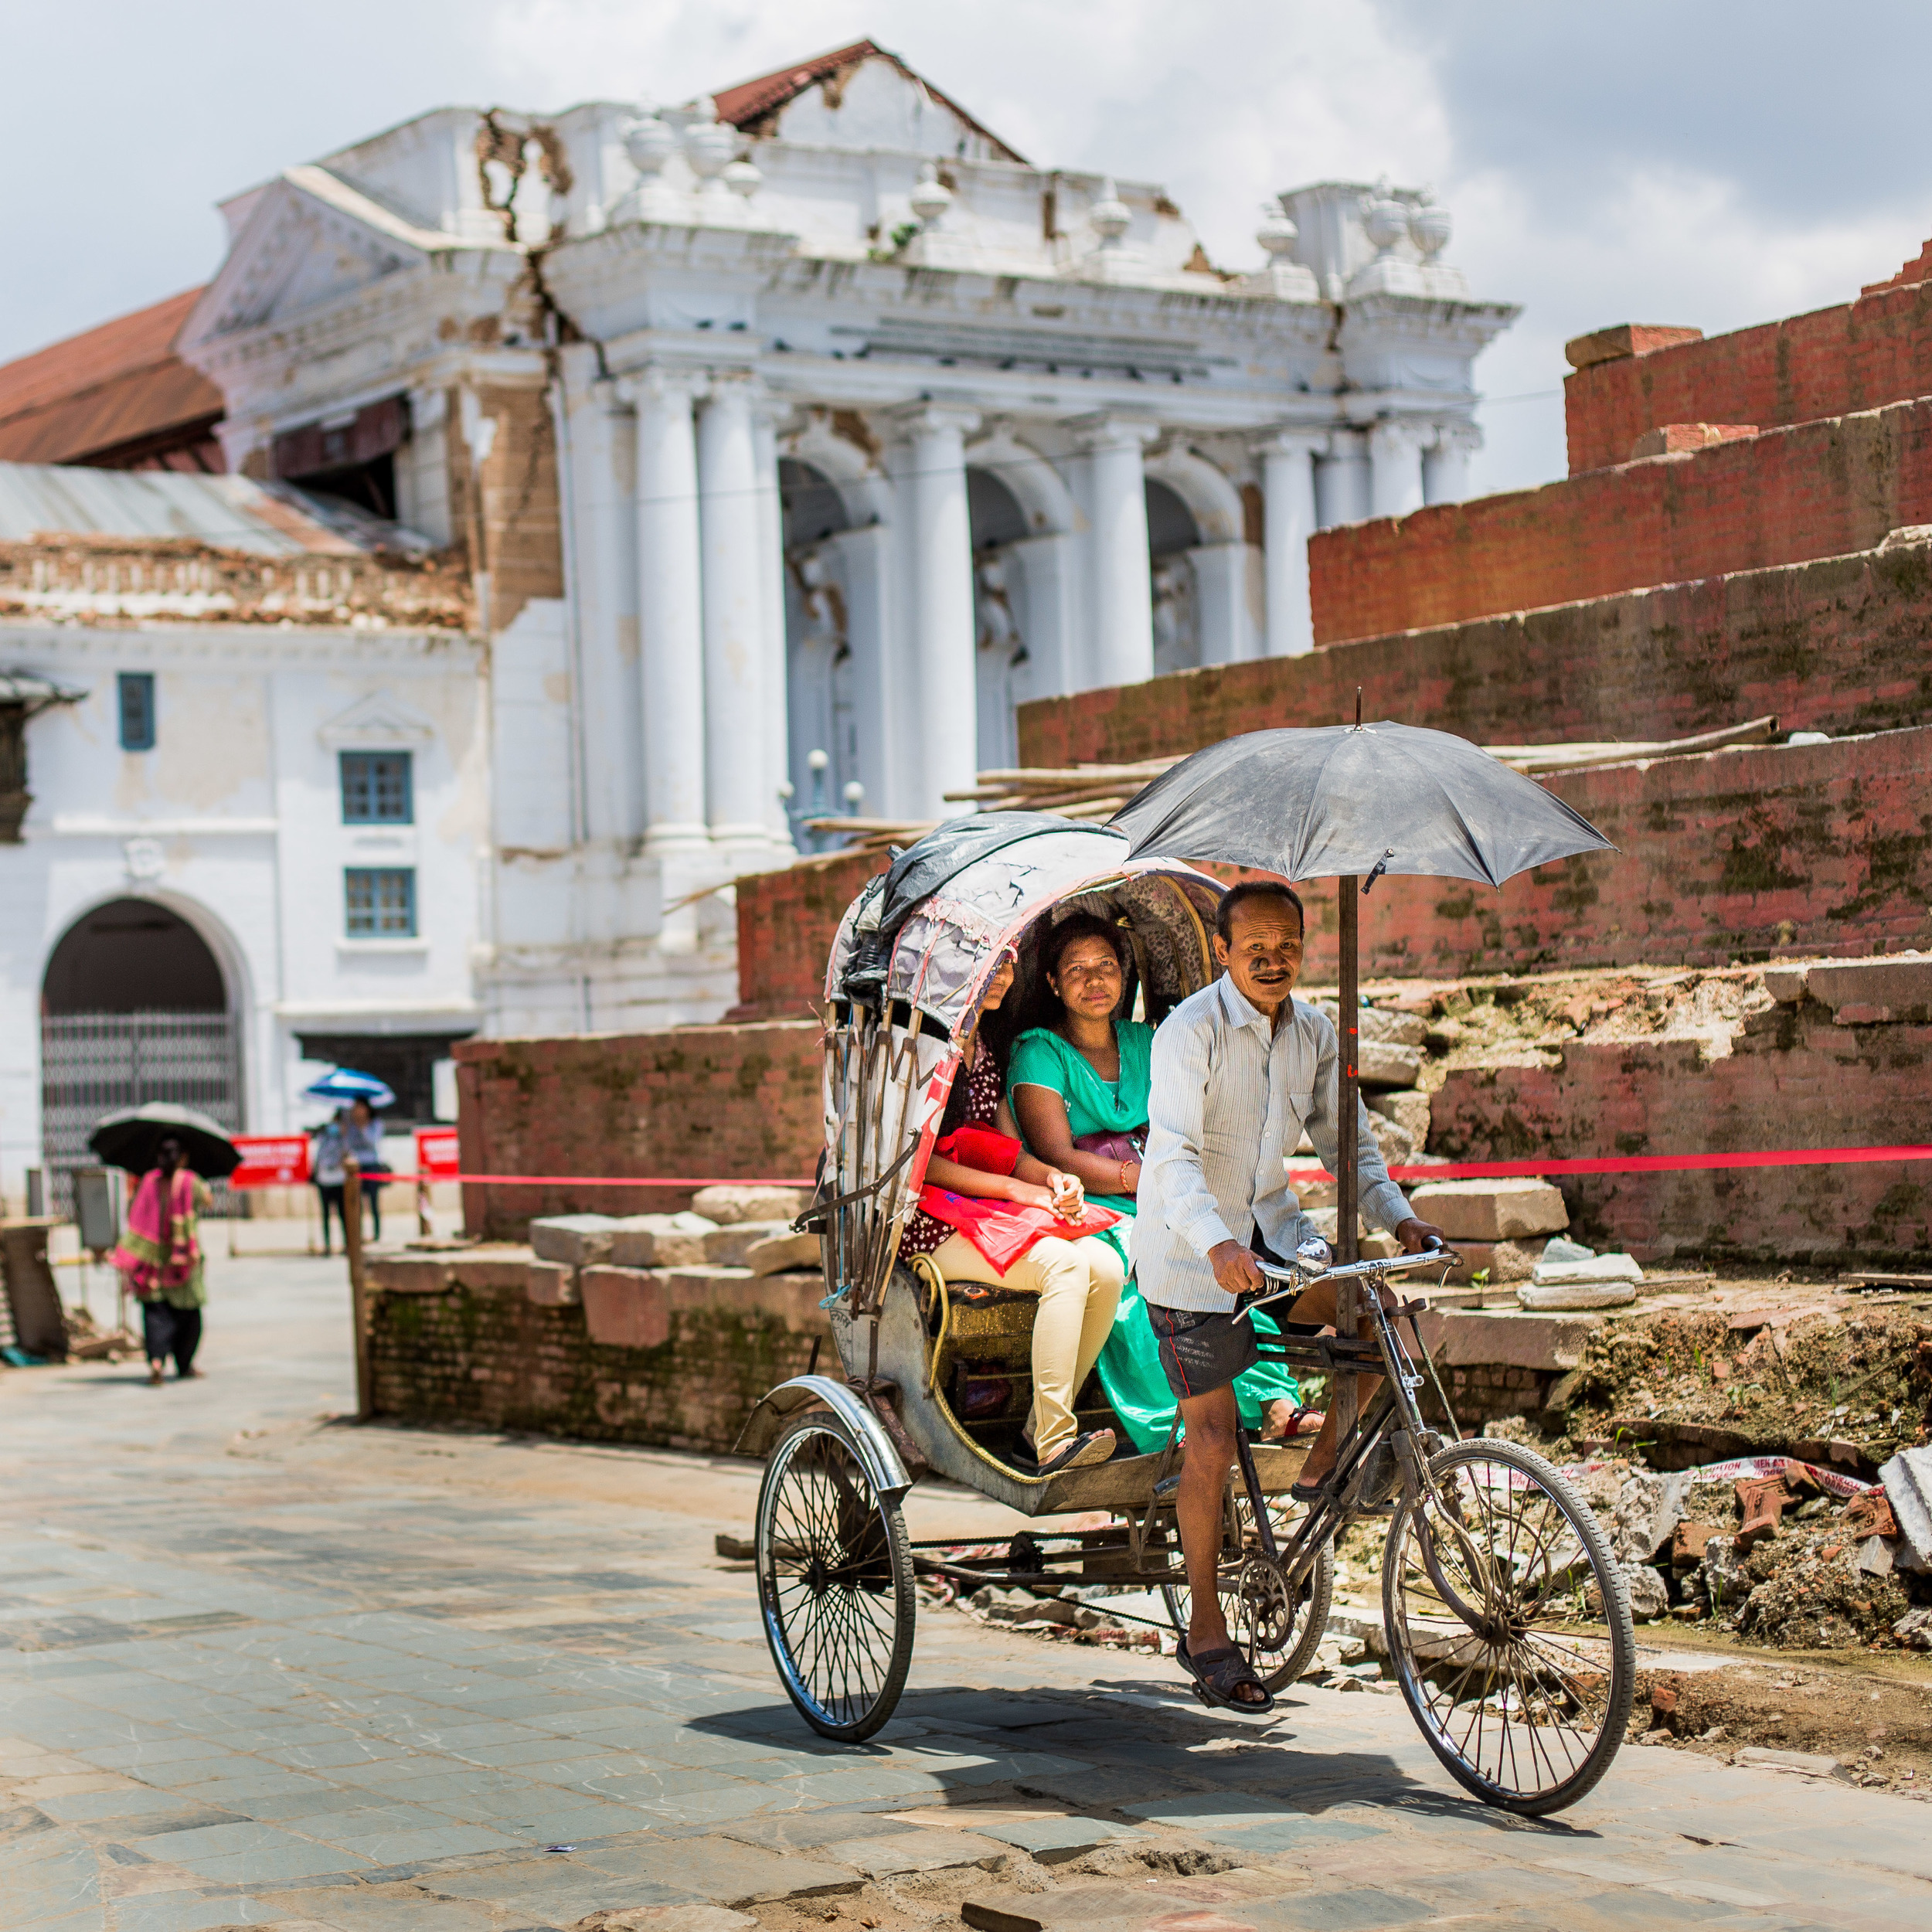 Life continues and rickshaw drivers again cycle past the destroyed Gaddi Baithak in Basantapur Durbar Square. This European style building was built as a part of the palace in the early twentieth century.